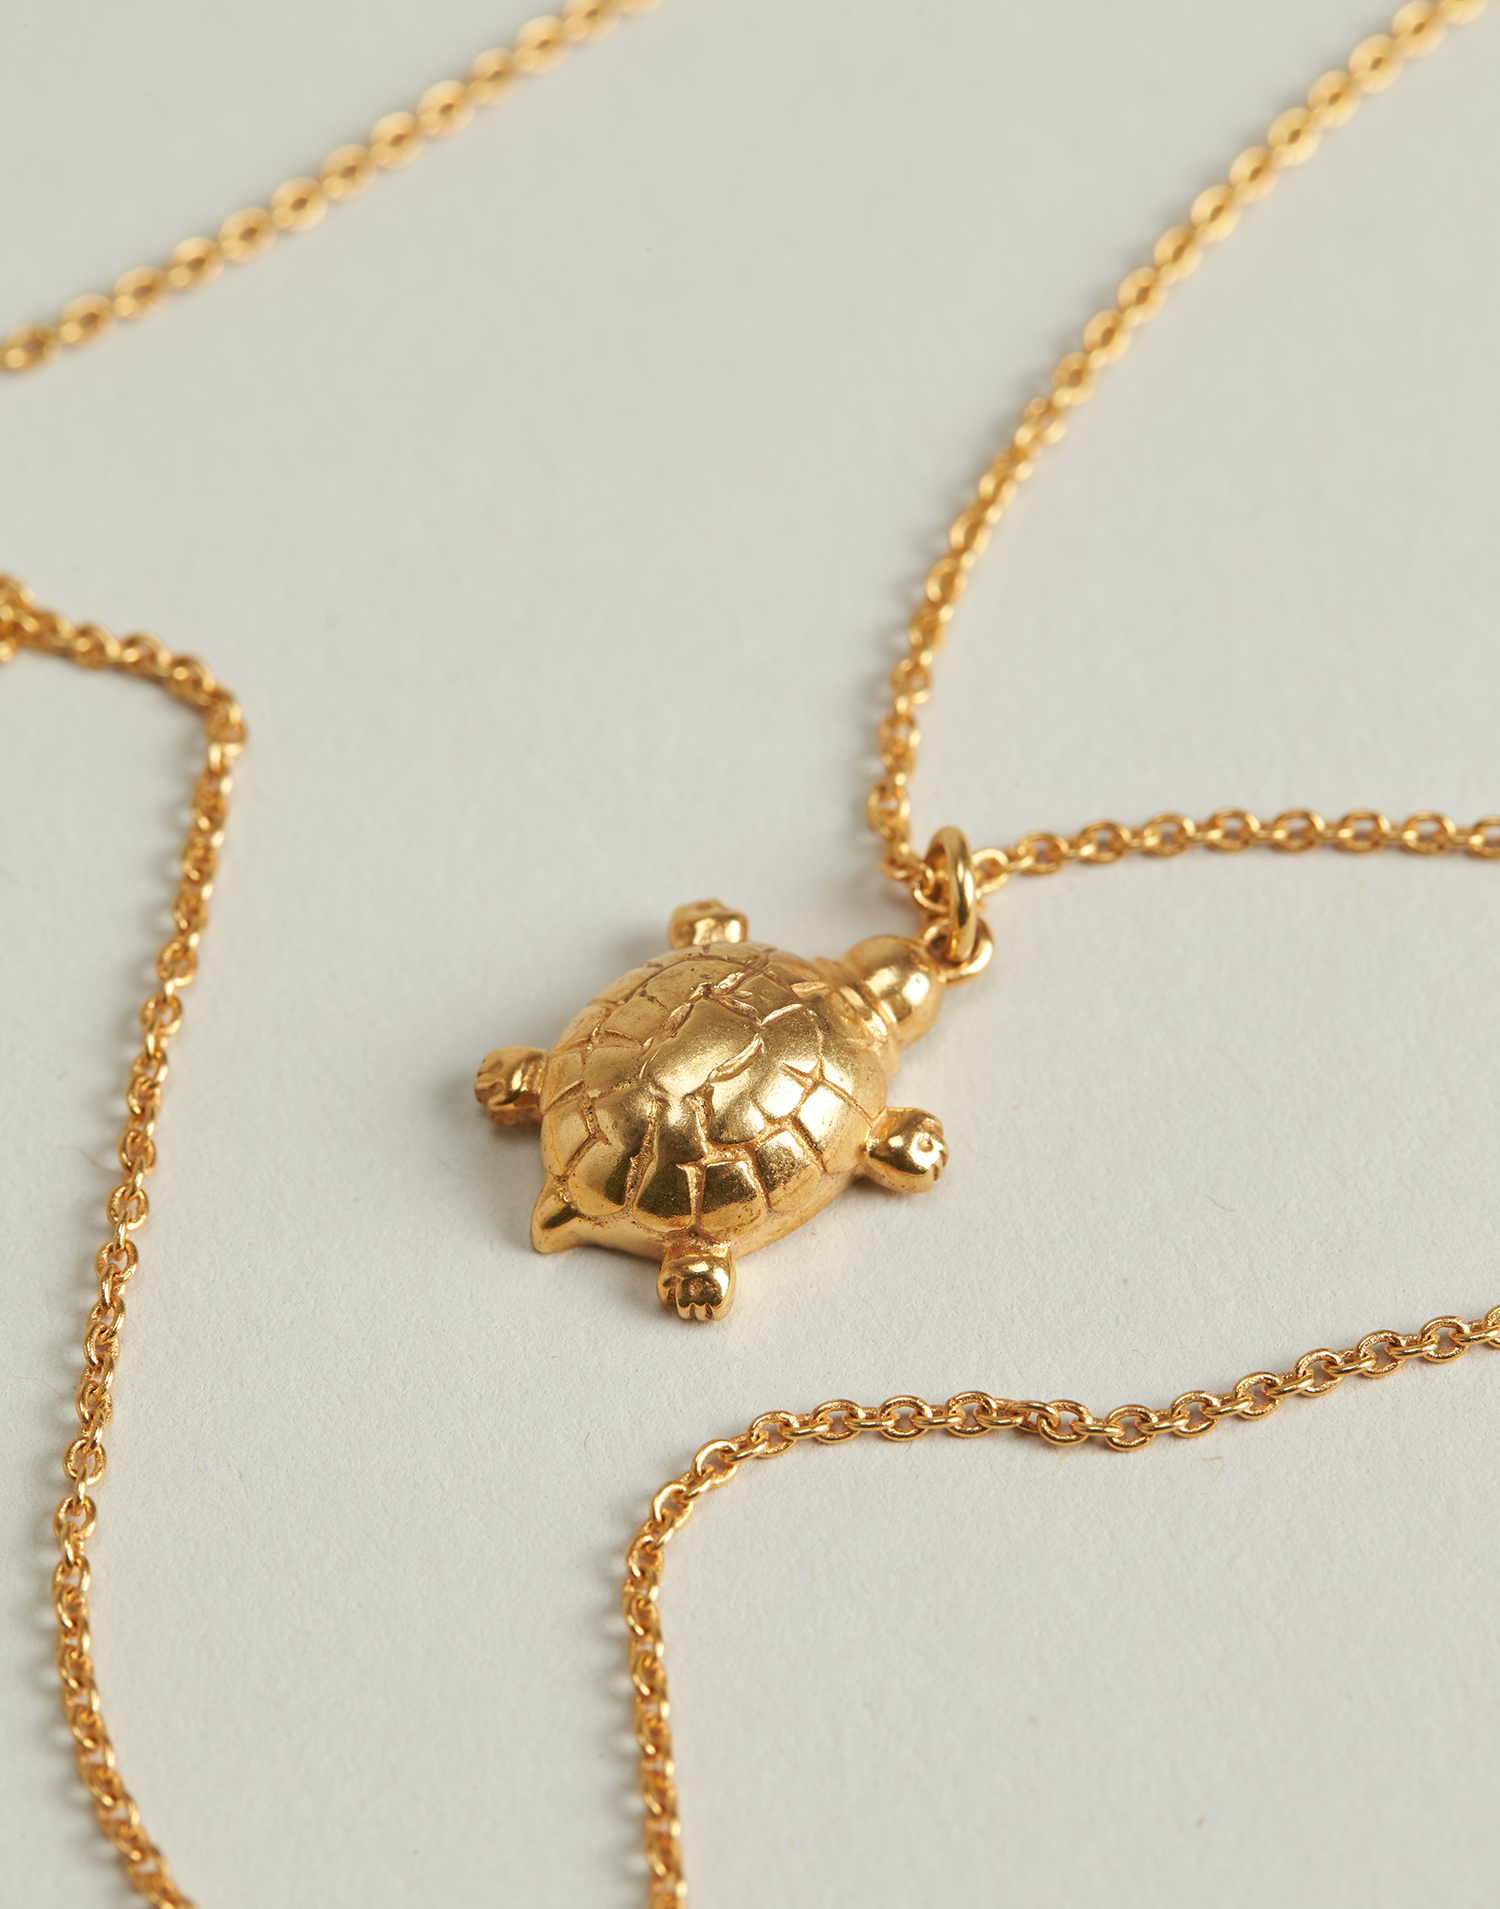 Gilded tortoise necklace